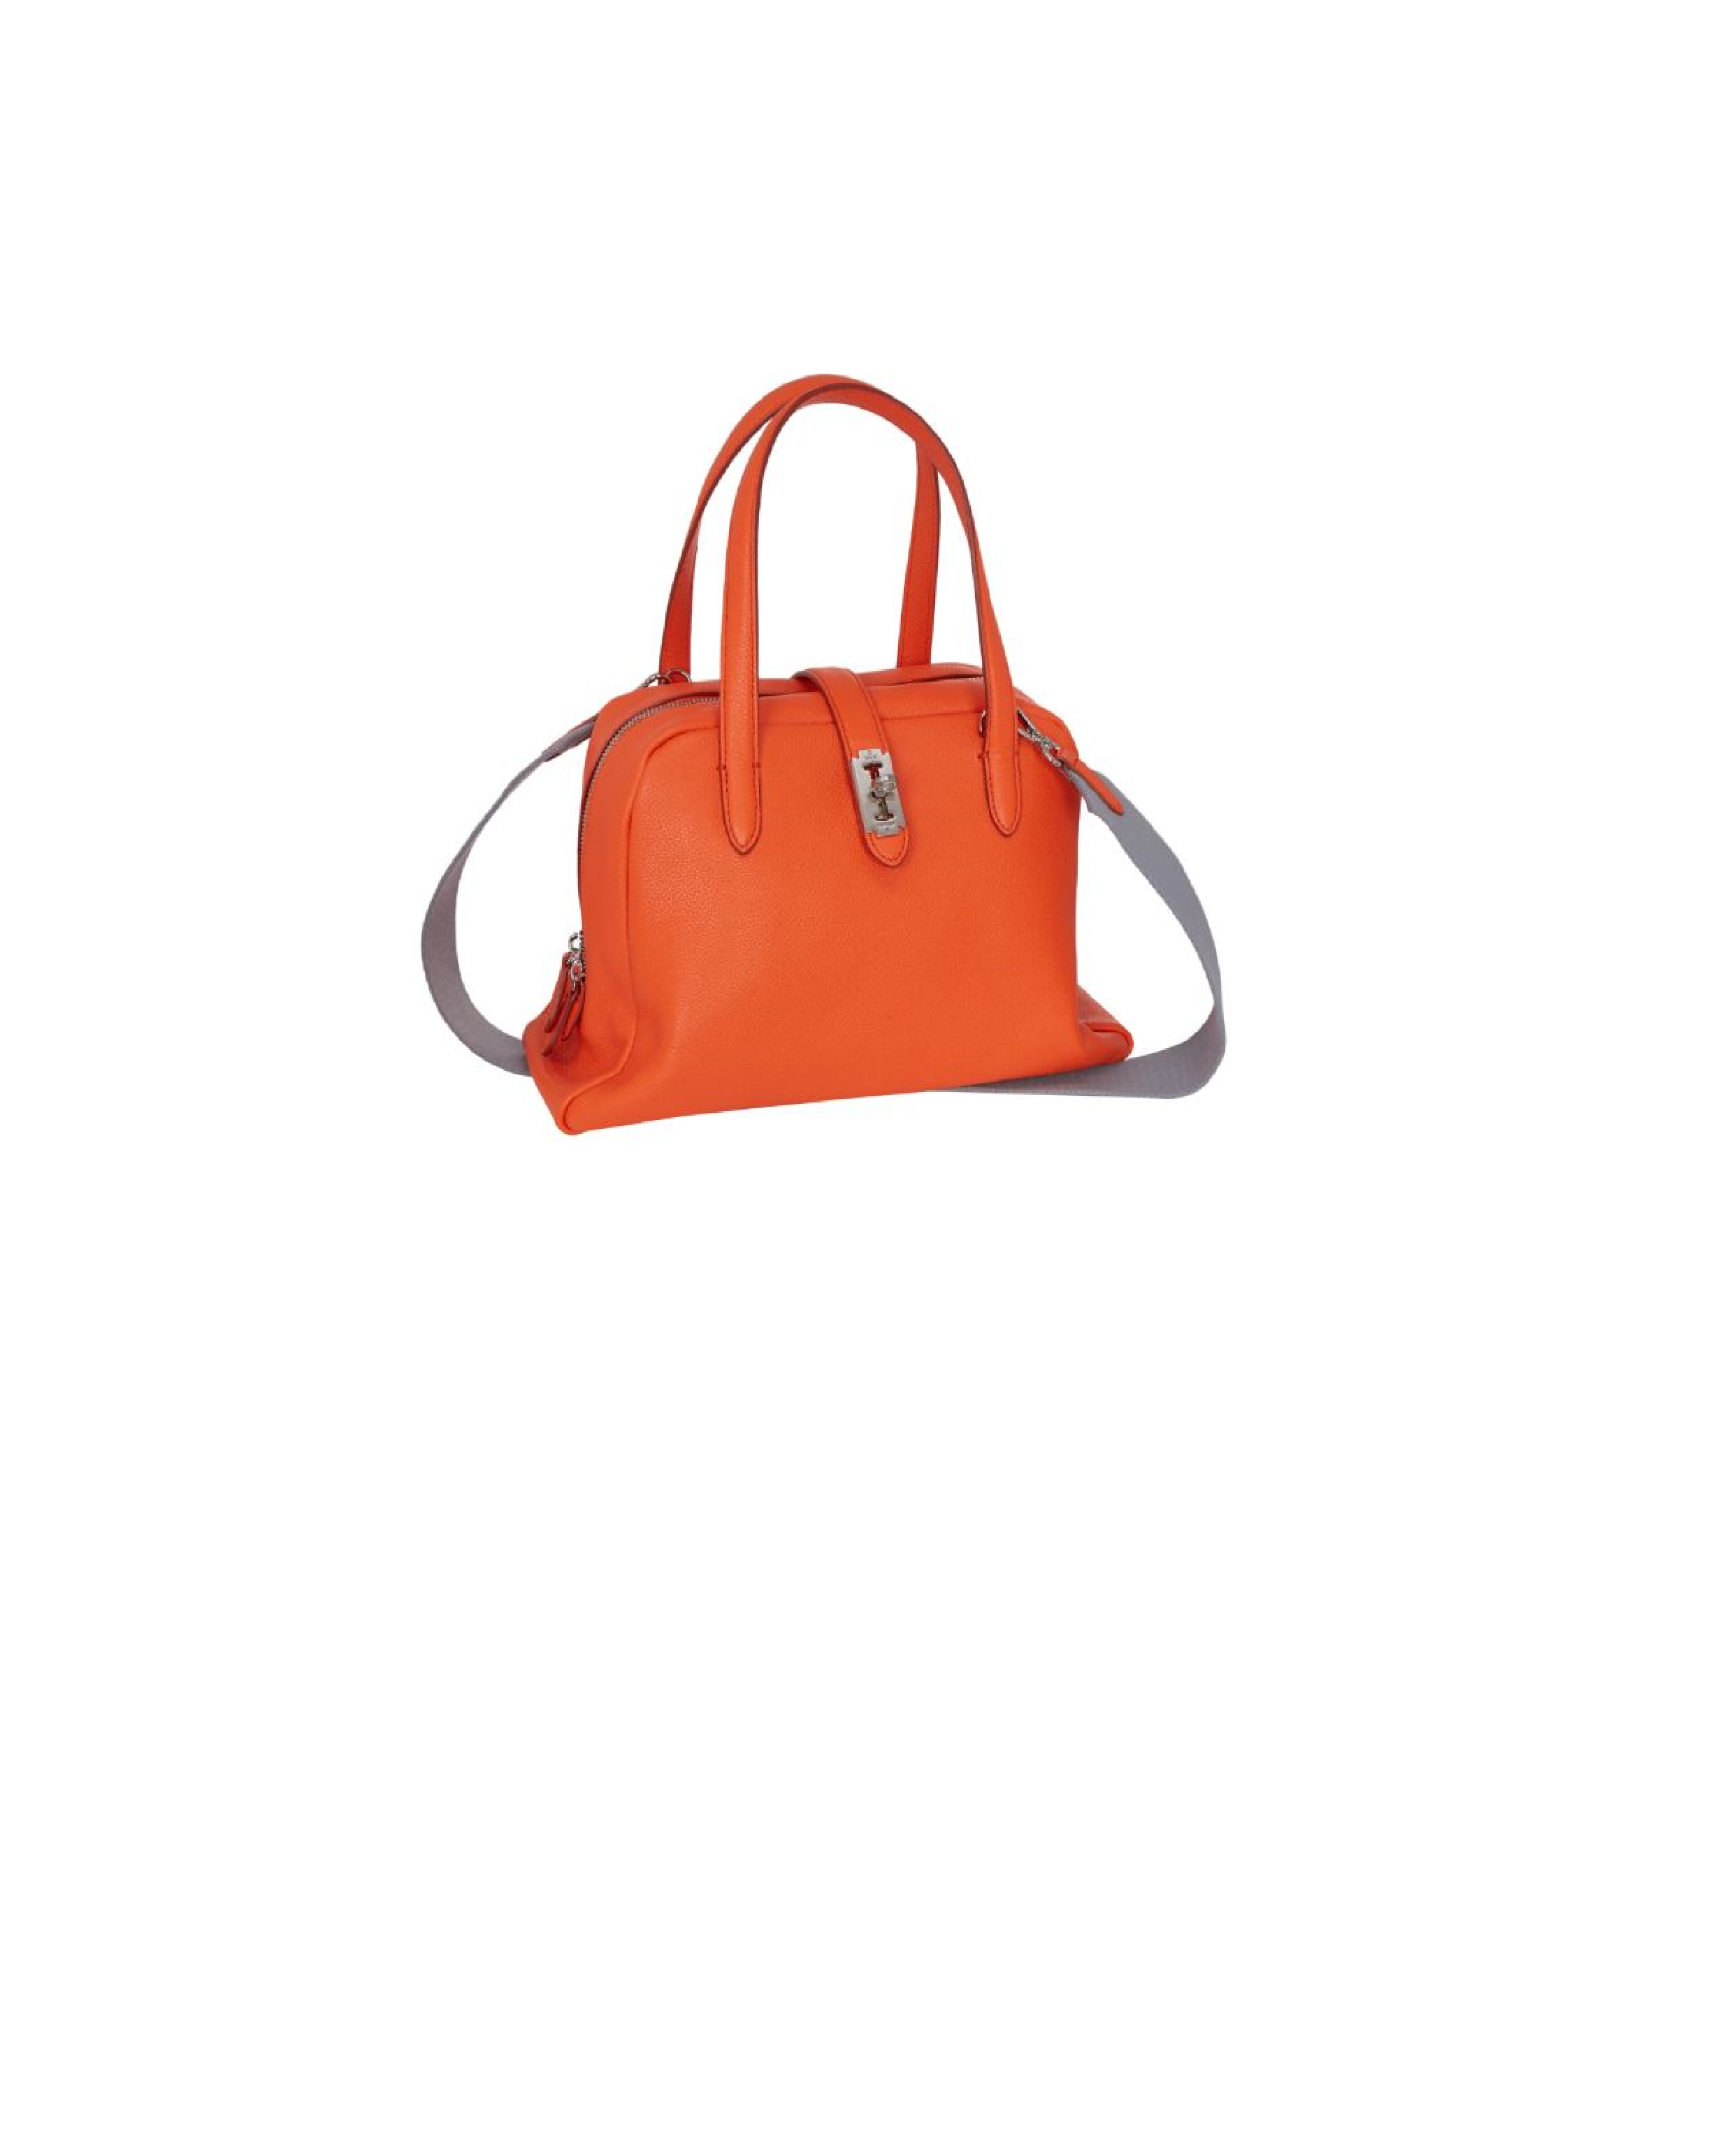 Toque tote M (토크 토트 미듐) Bright orange_VQB01TO2031